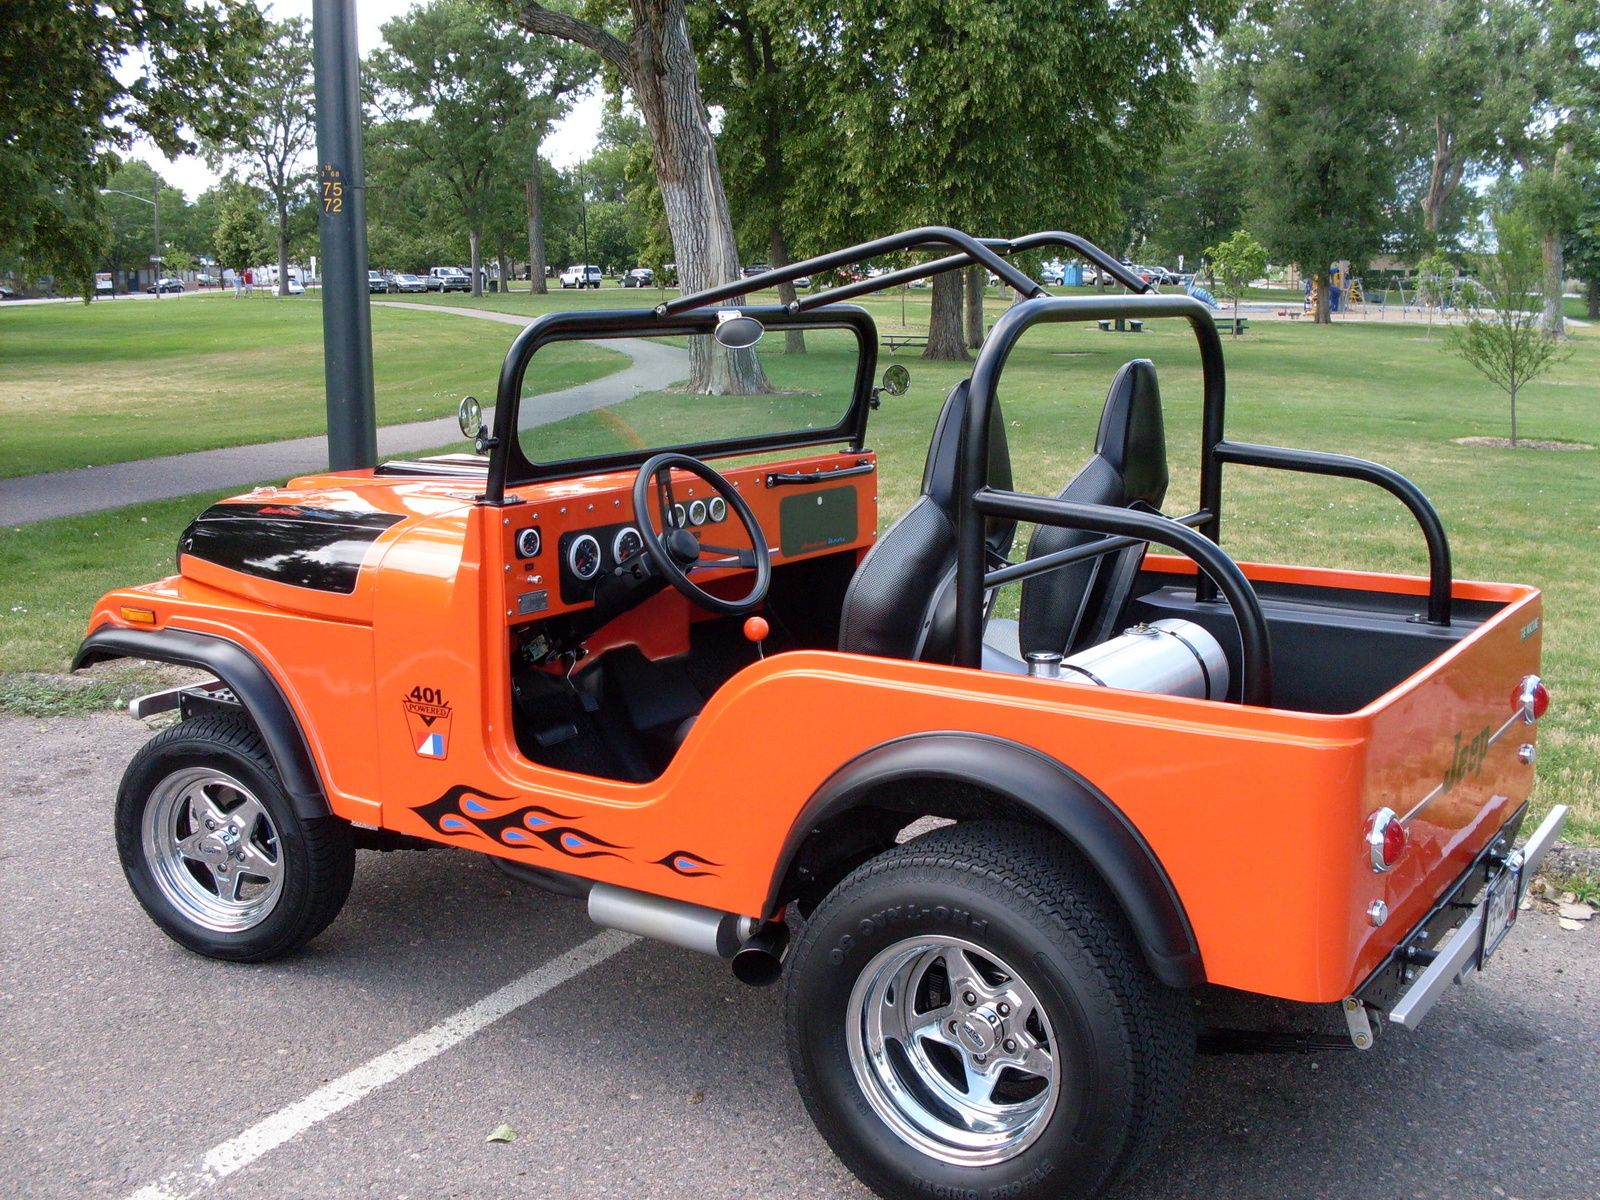 Hd wallpaper jeep - Image For 1973 Jeep Cj5 Hd Widescreen Wallpaper Car With Hd Wallpapers Source